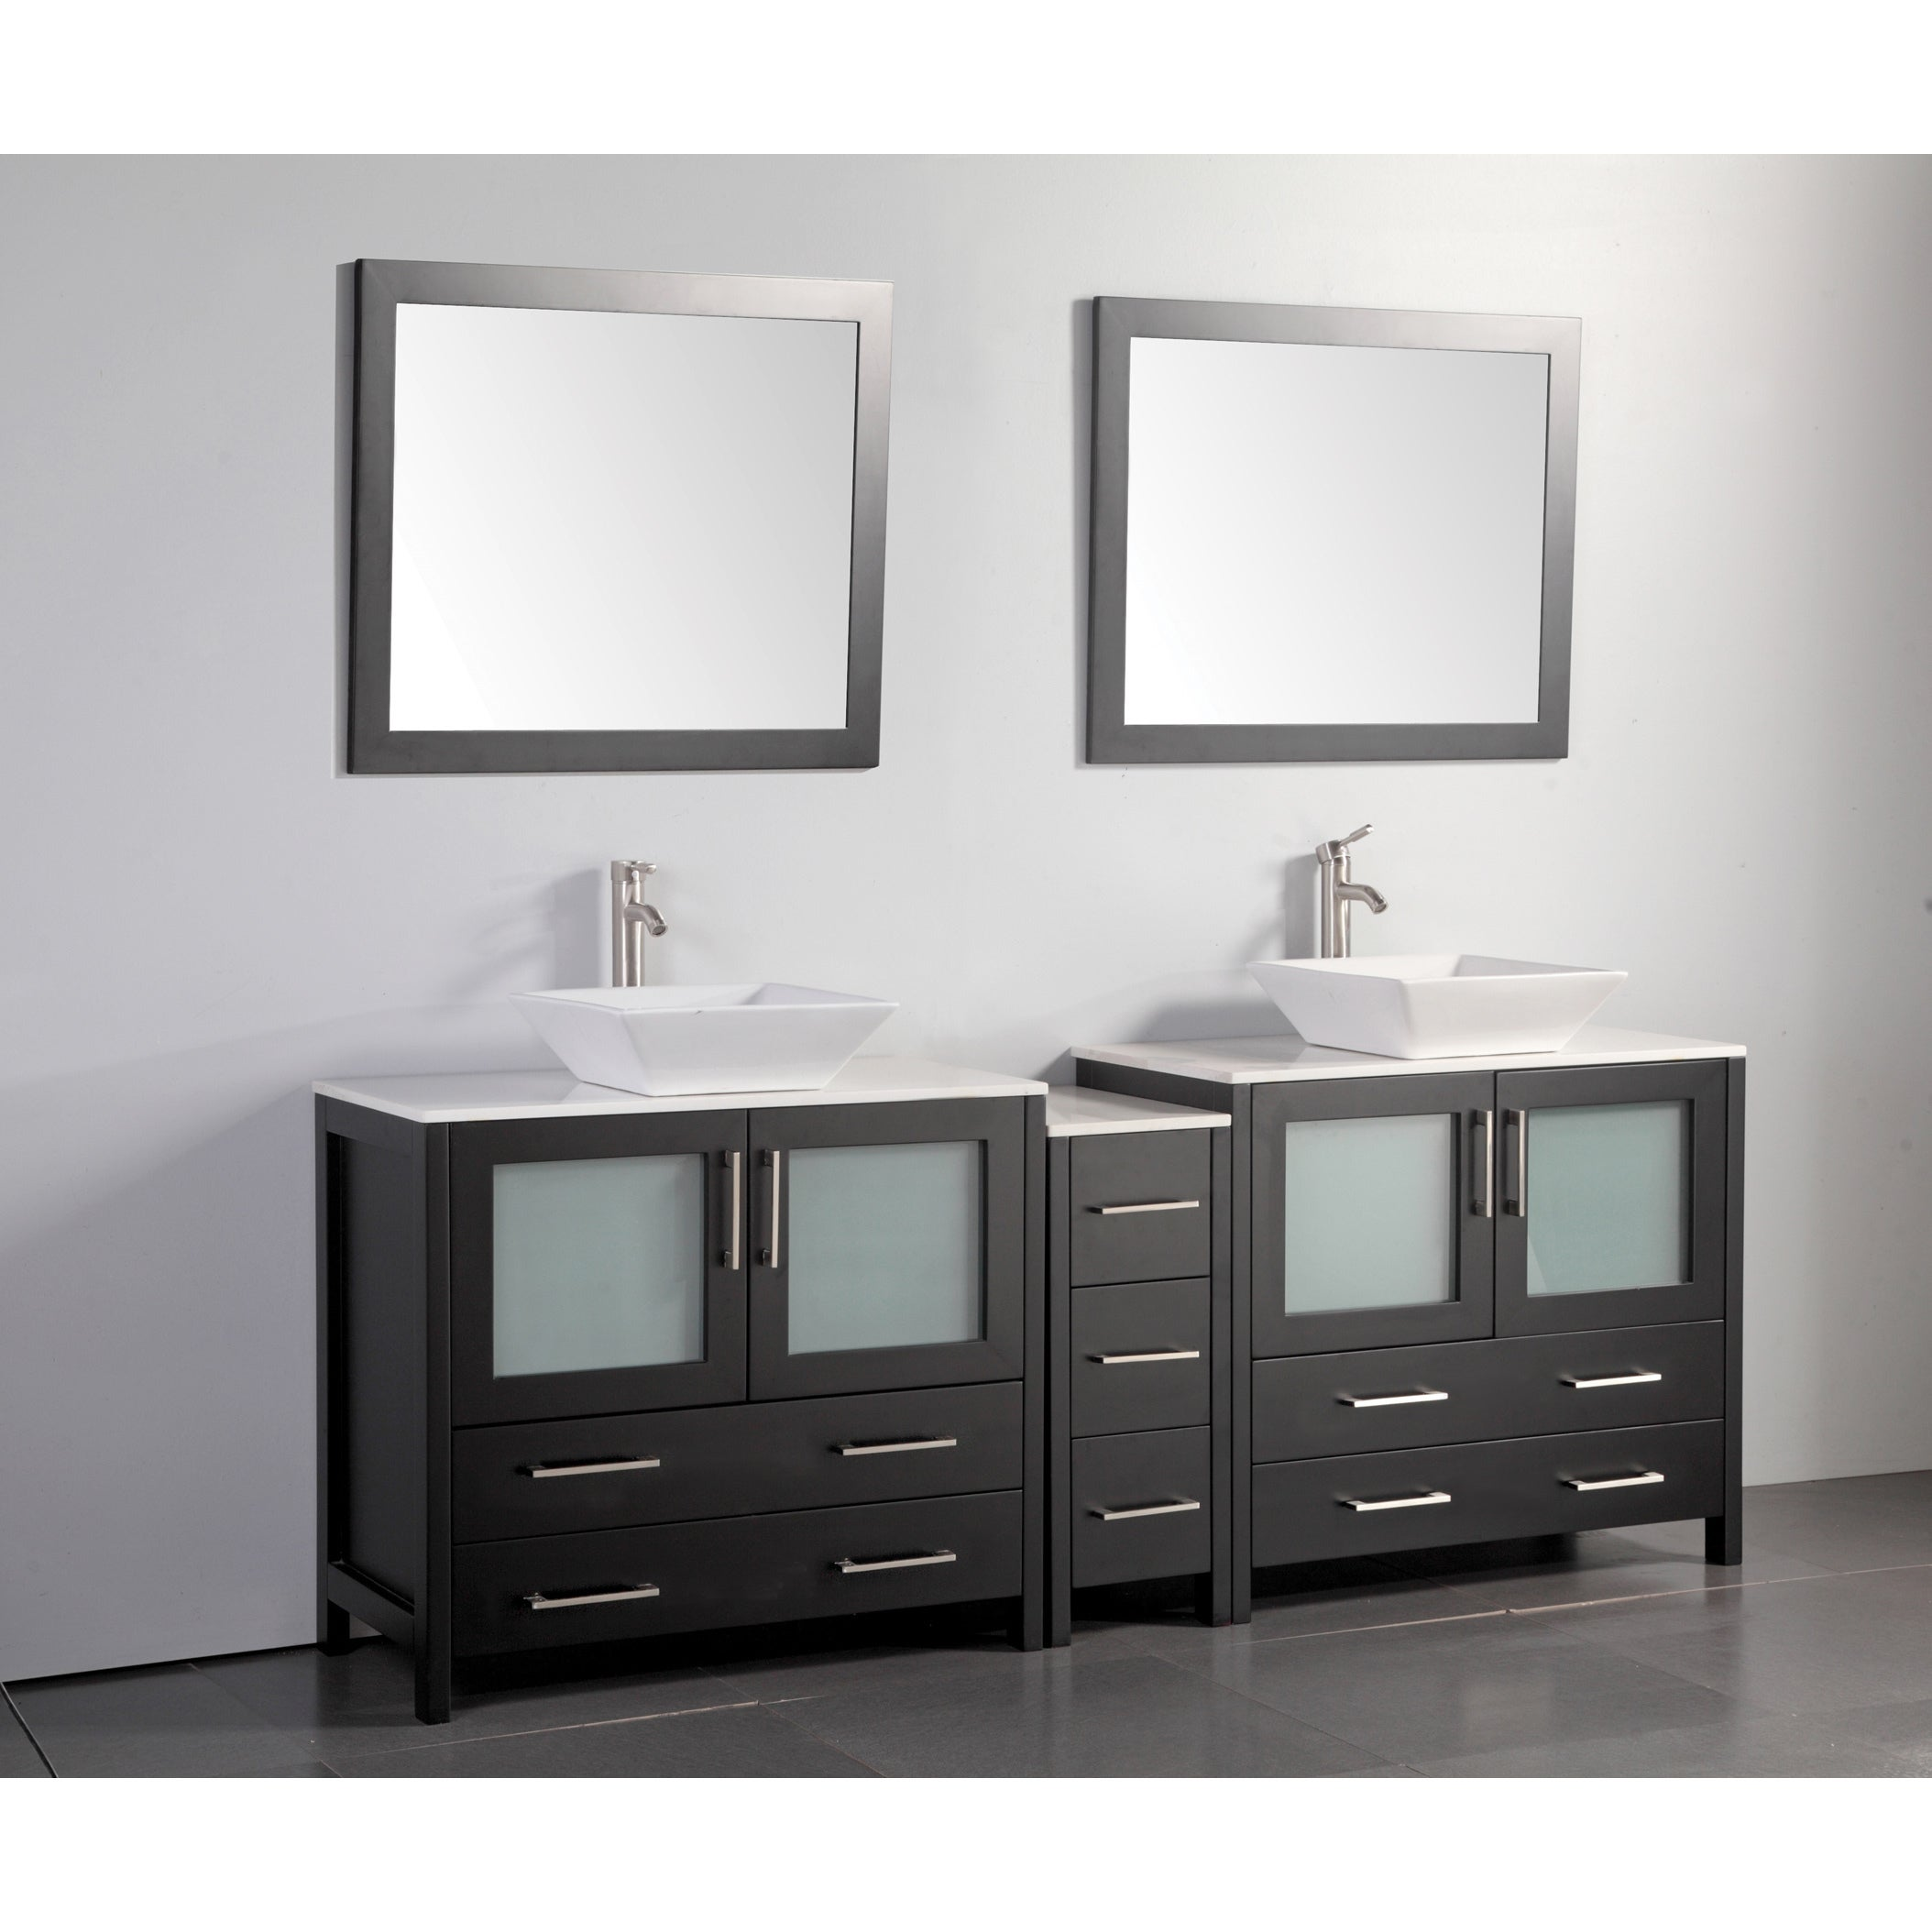 84 inch vanity top double sink. 84 Inch Vanity Top Double Sink Compare Prices At Nextag Marvellous Contemporary  Best